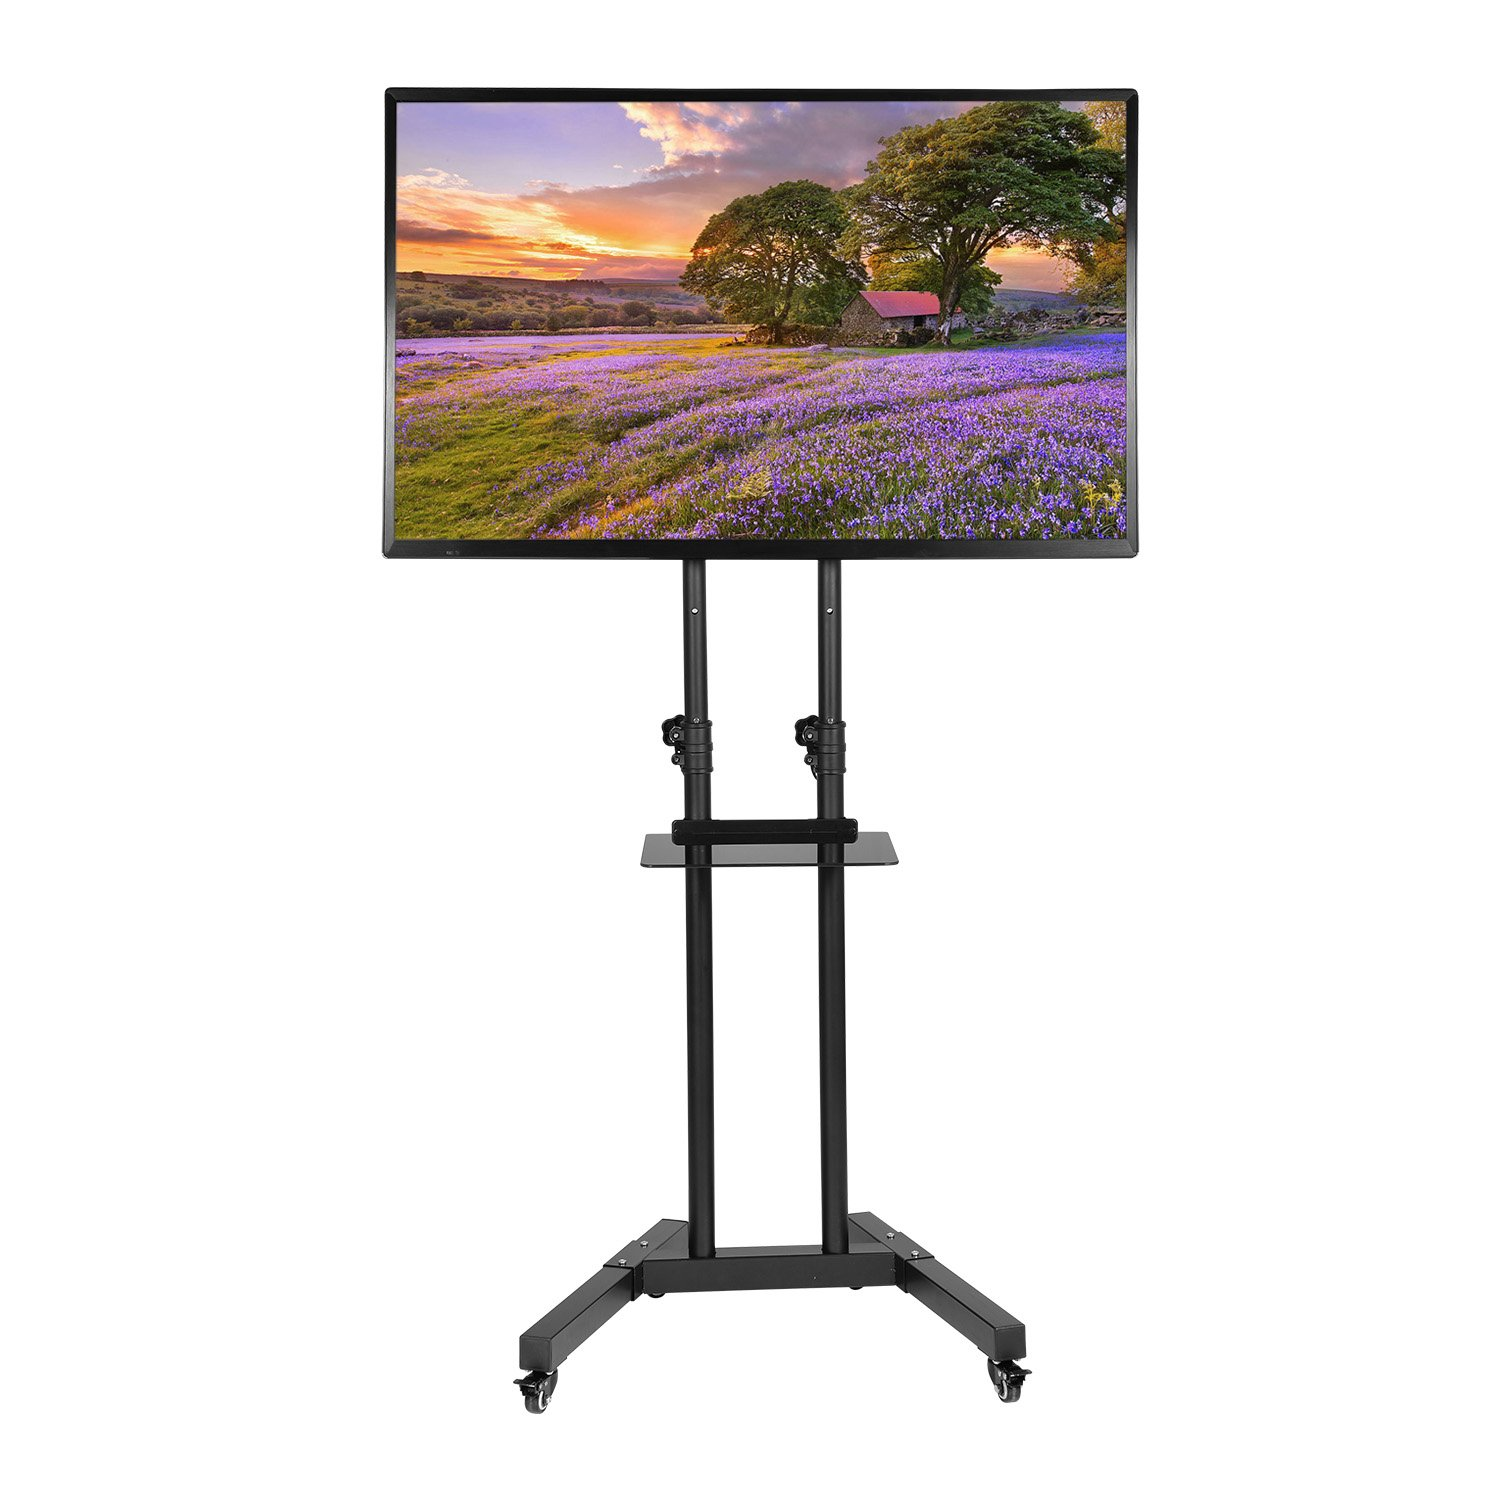 Ollieroo TV Mobile Stand with Mount Height Adjustable for Most 32-65 Inch TVs Flat Panel Screens